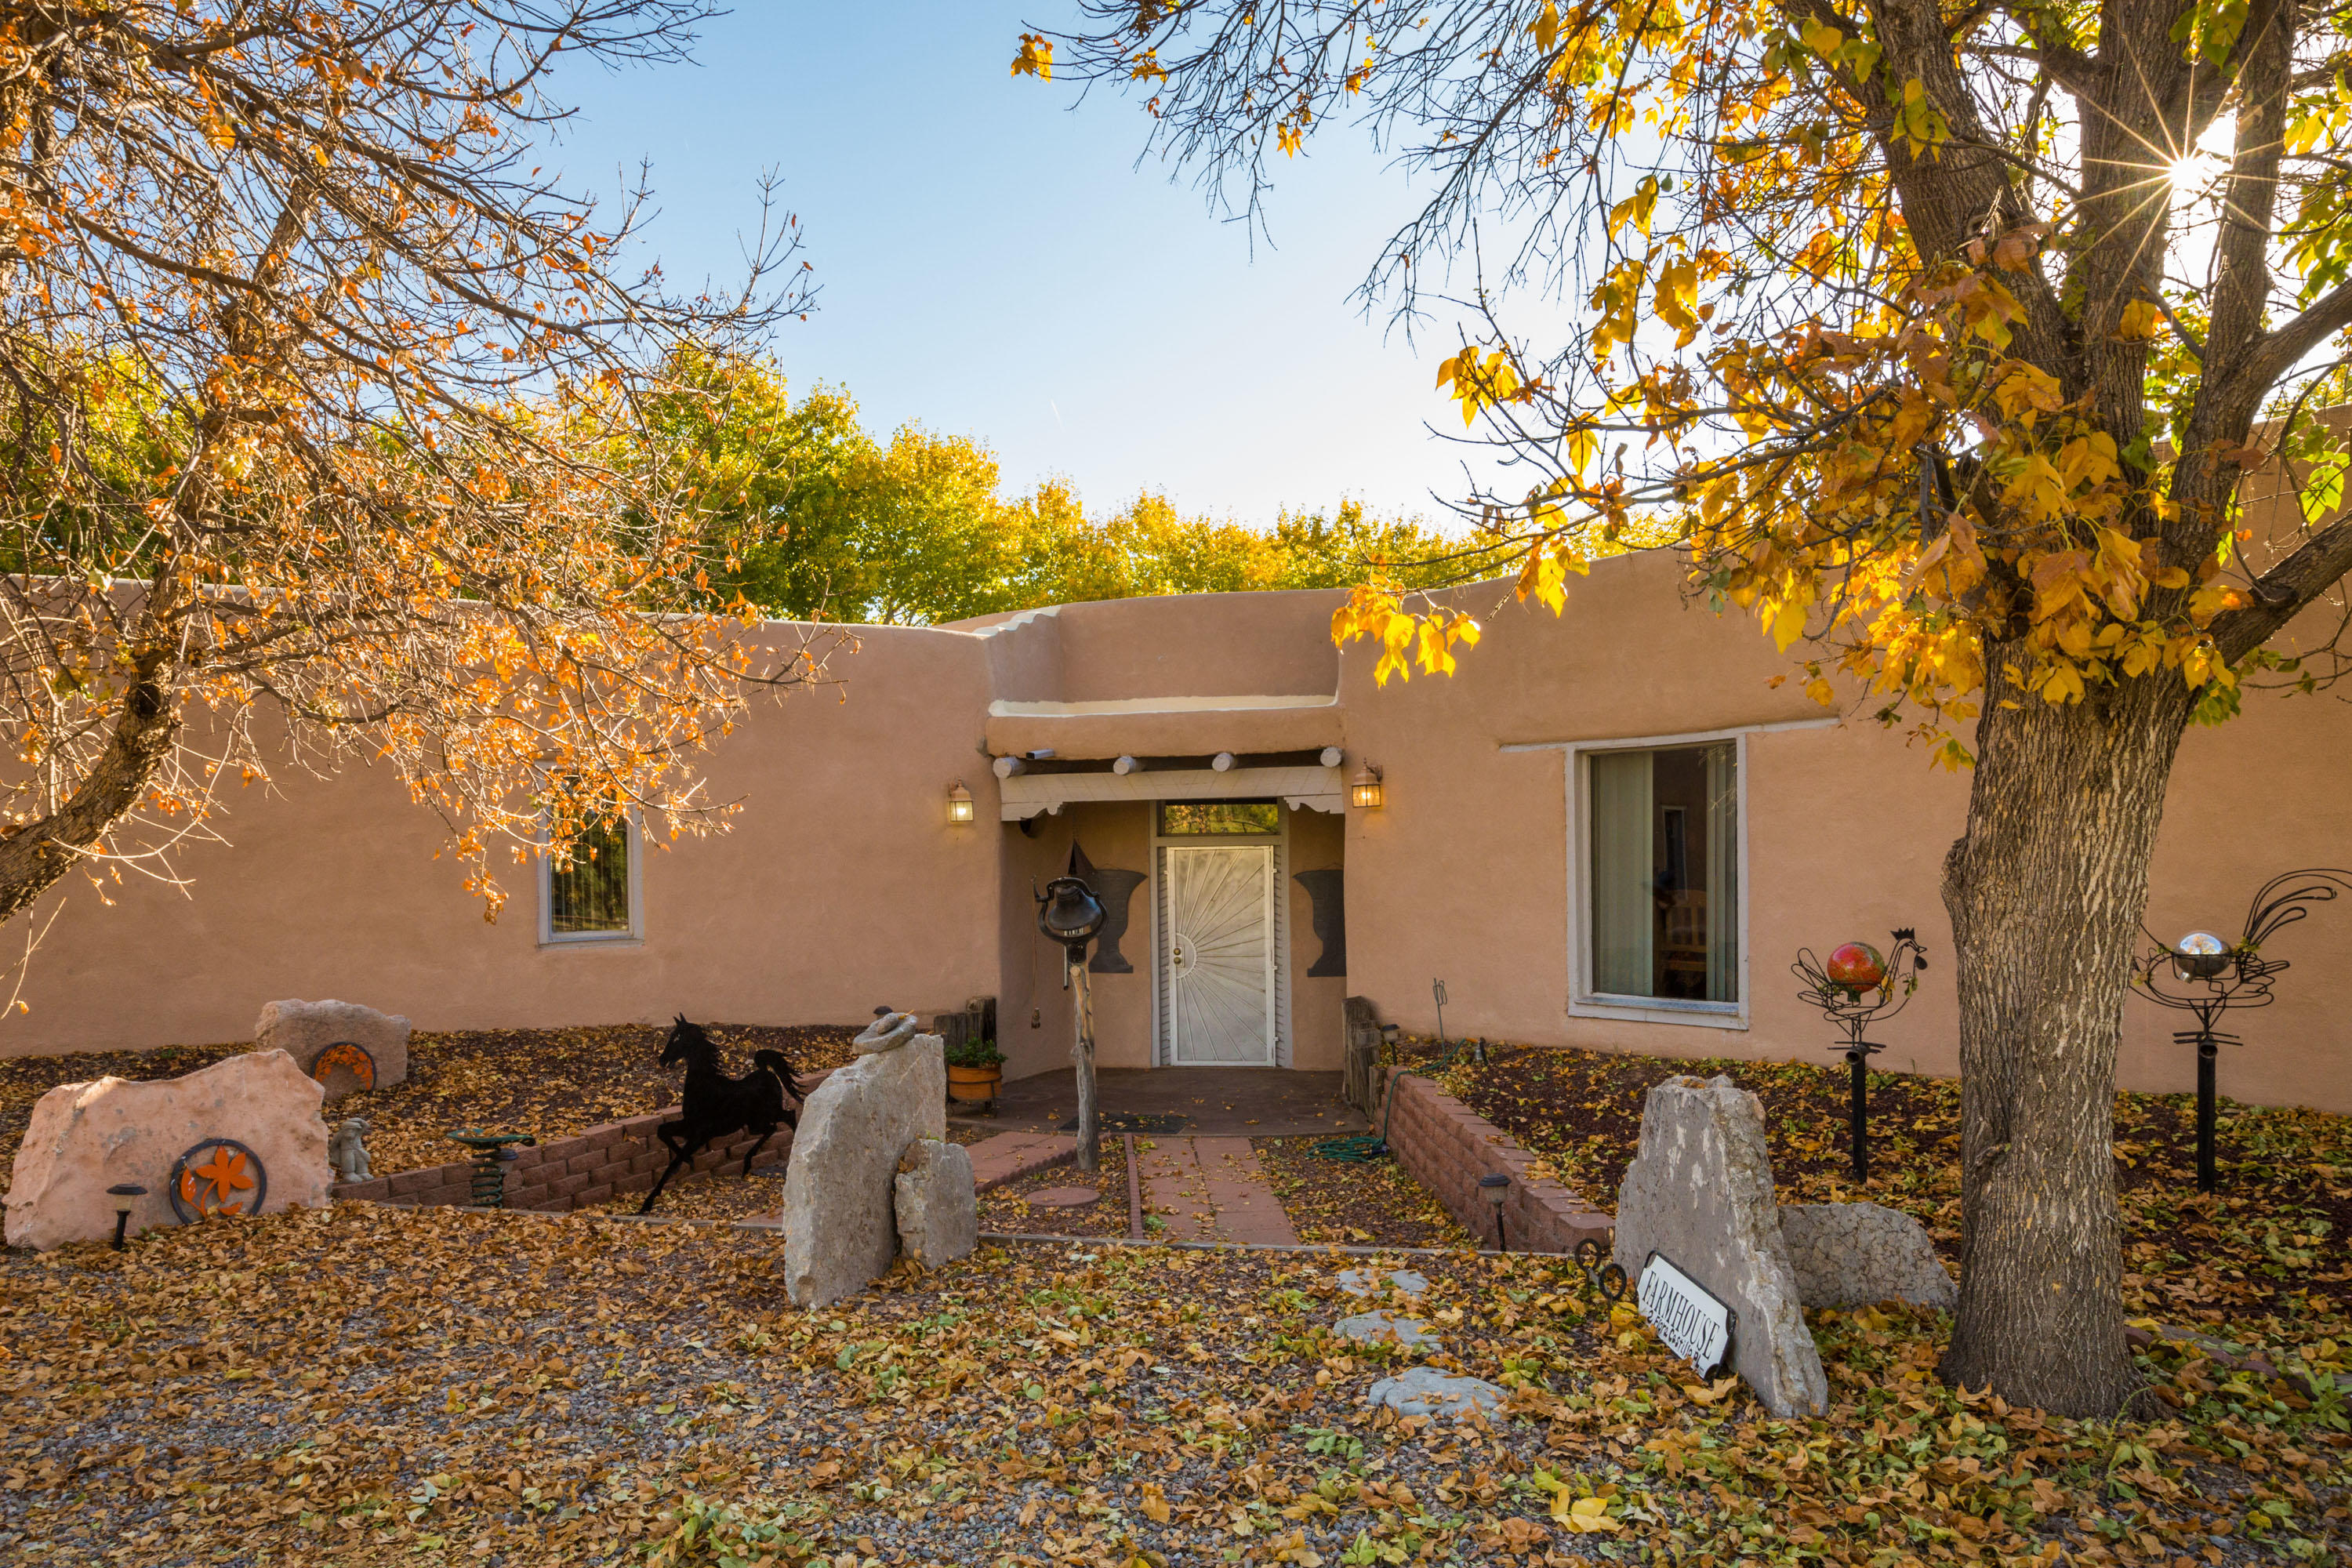 2 FLORA CASTILLO Place Property Photo - Belen, NM real estate listing